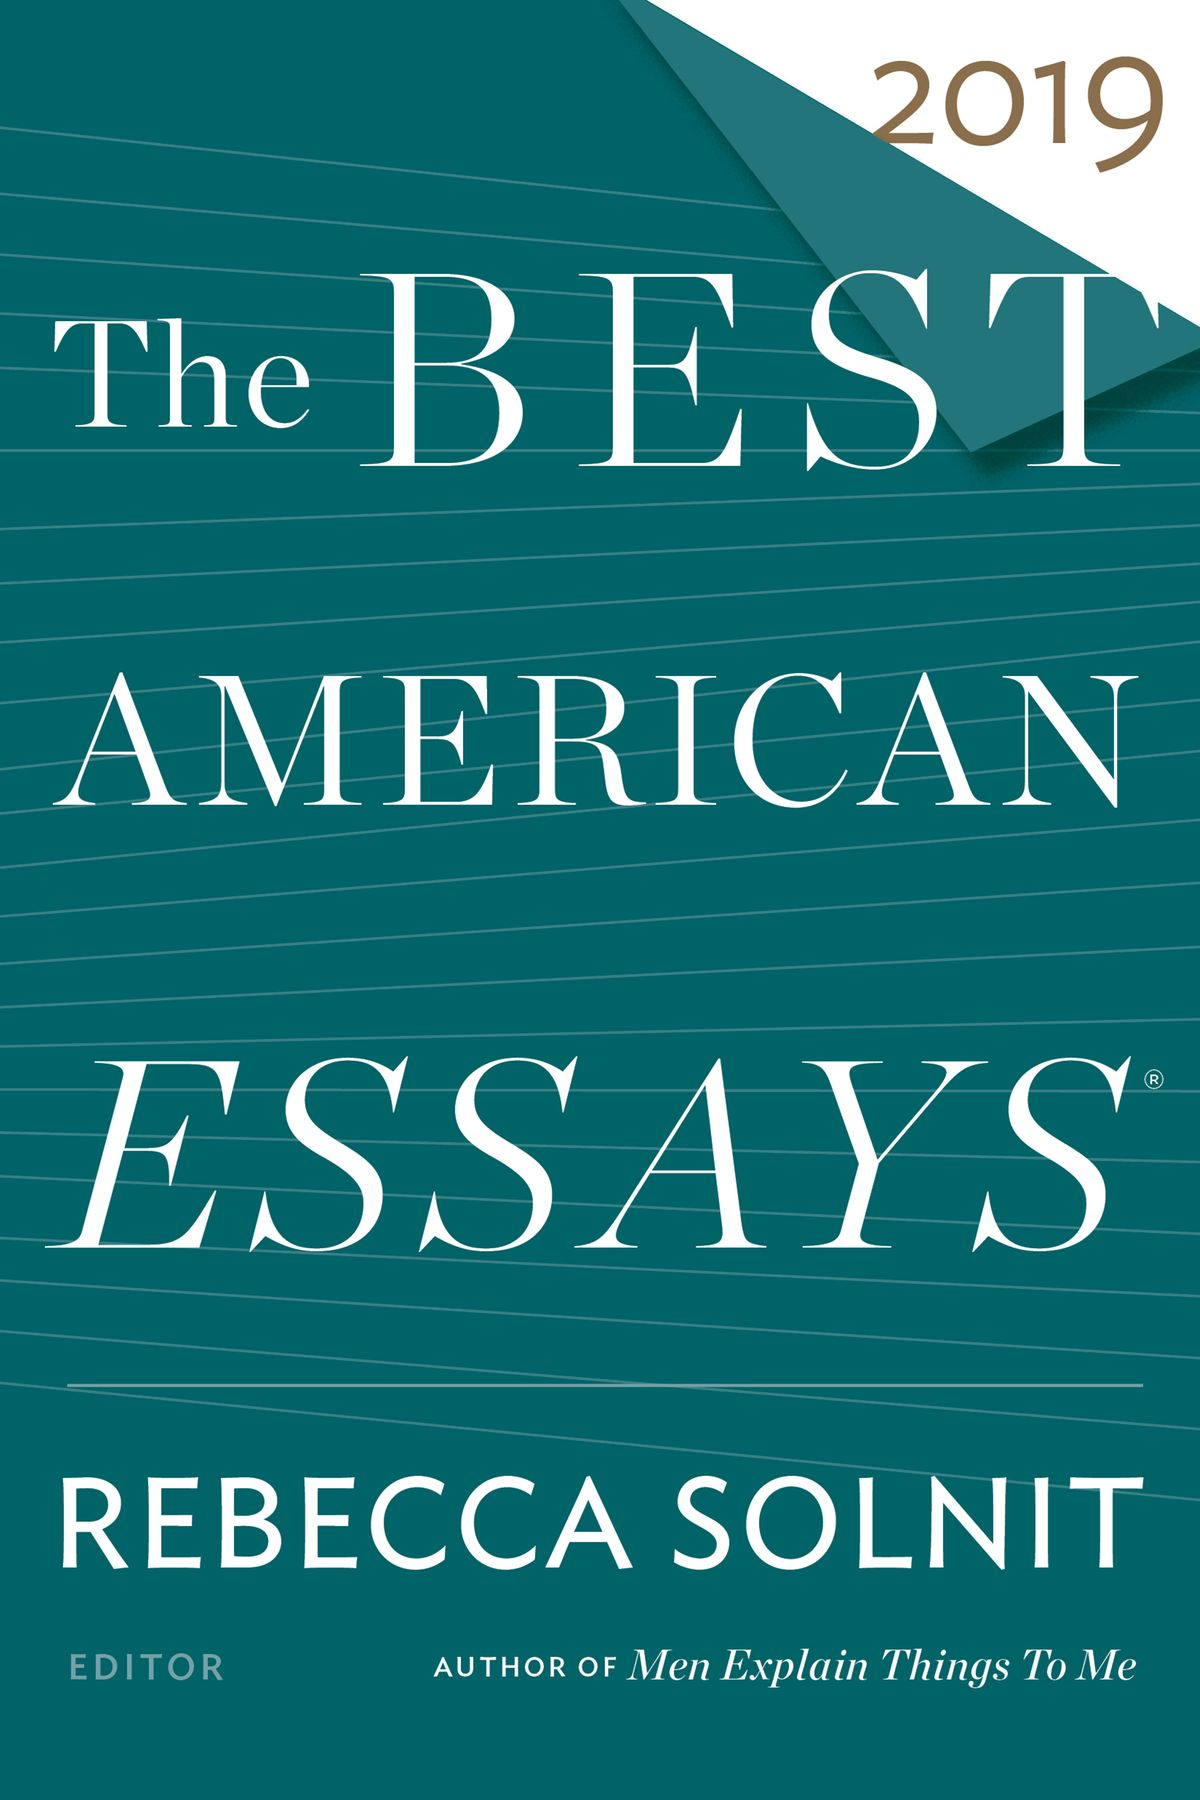 007 The Best American Essays Essay Striking 2017 Table Of Contents Century Pdf Full